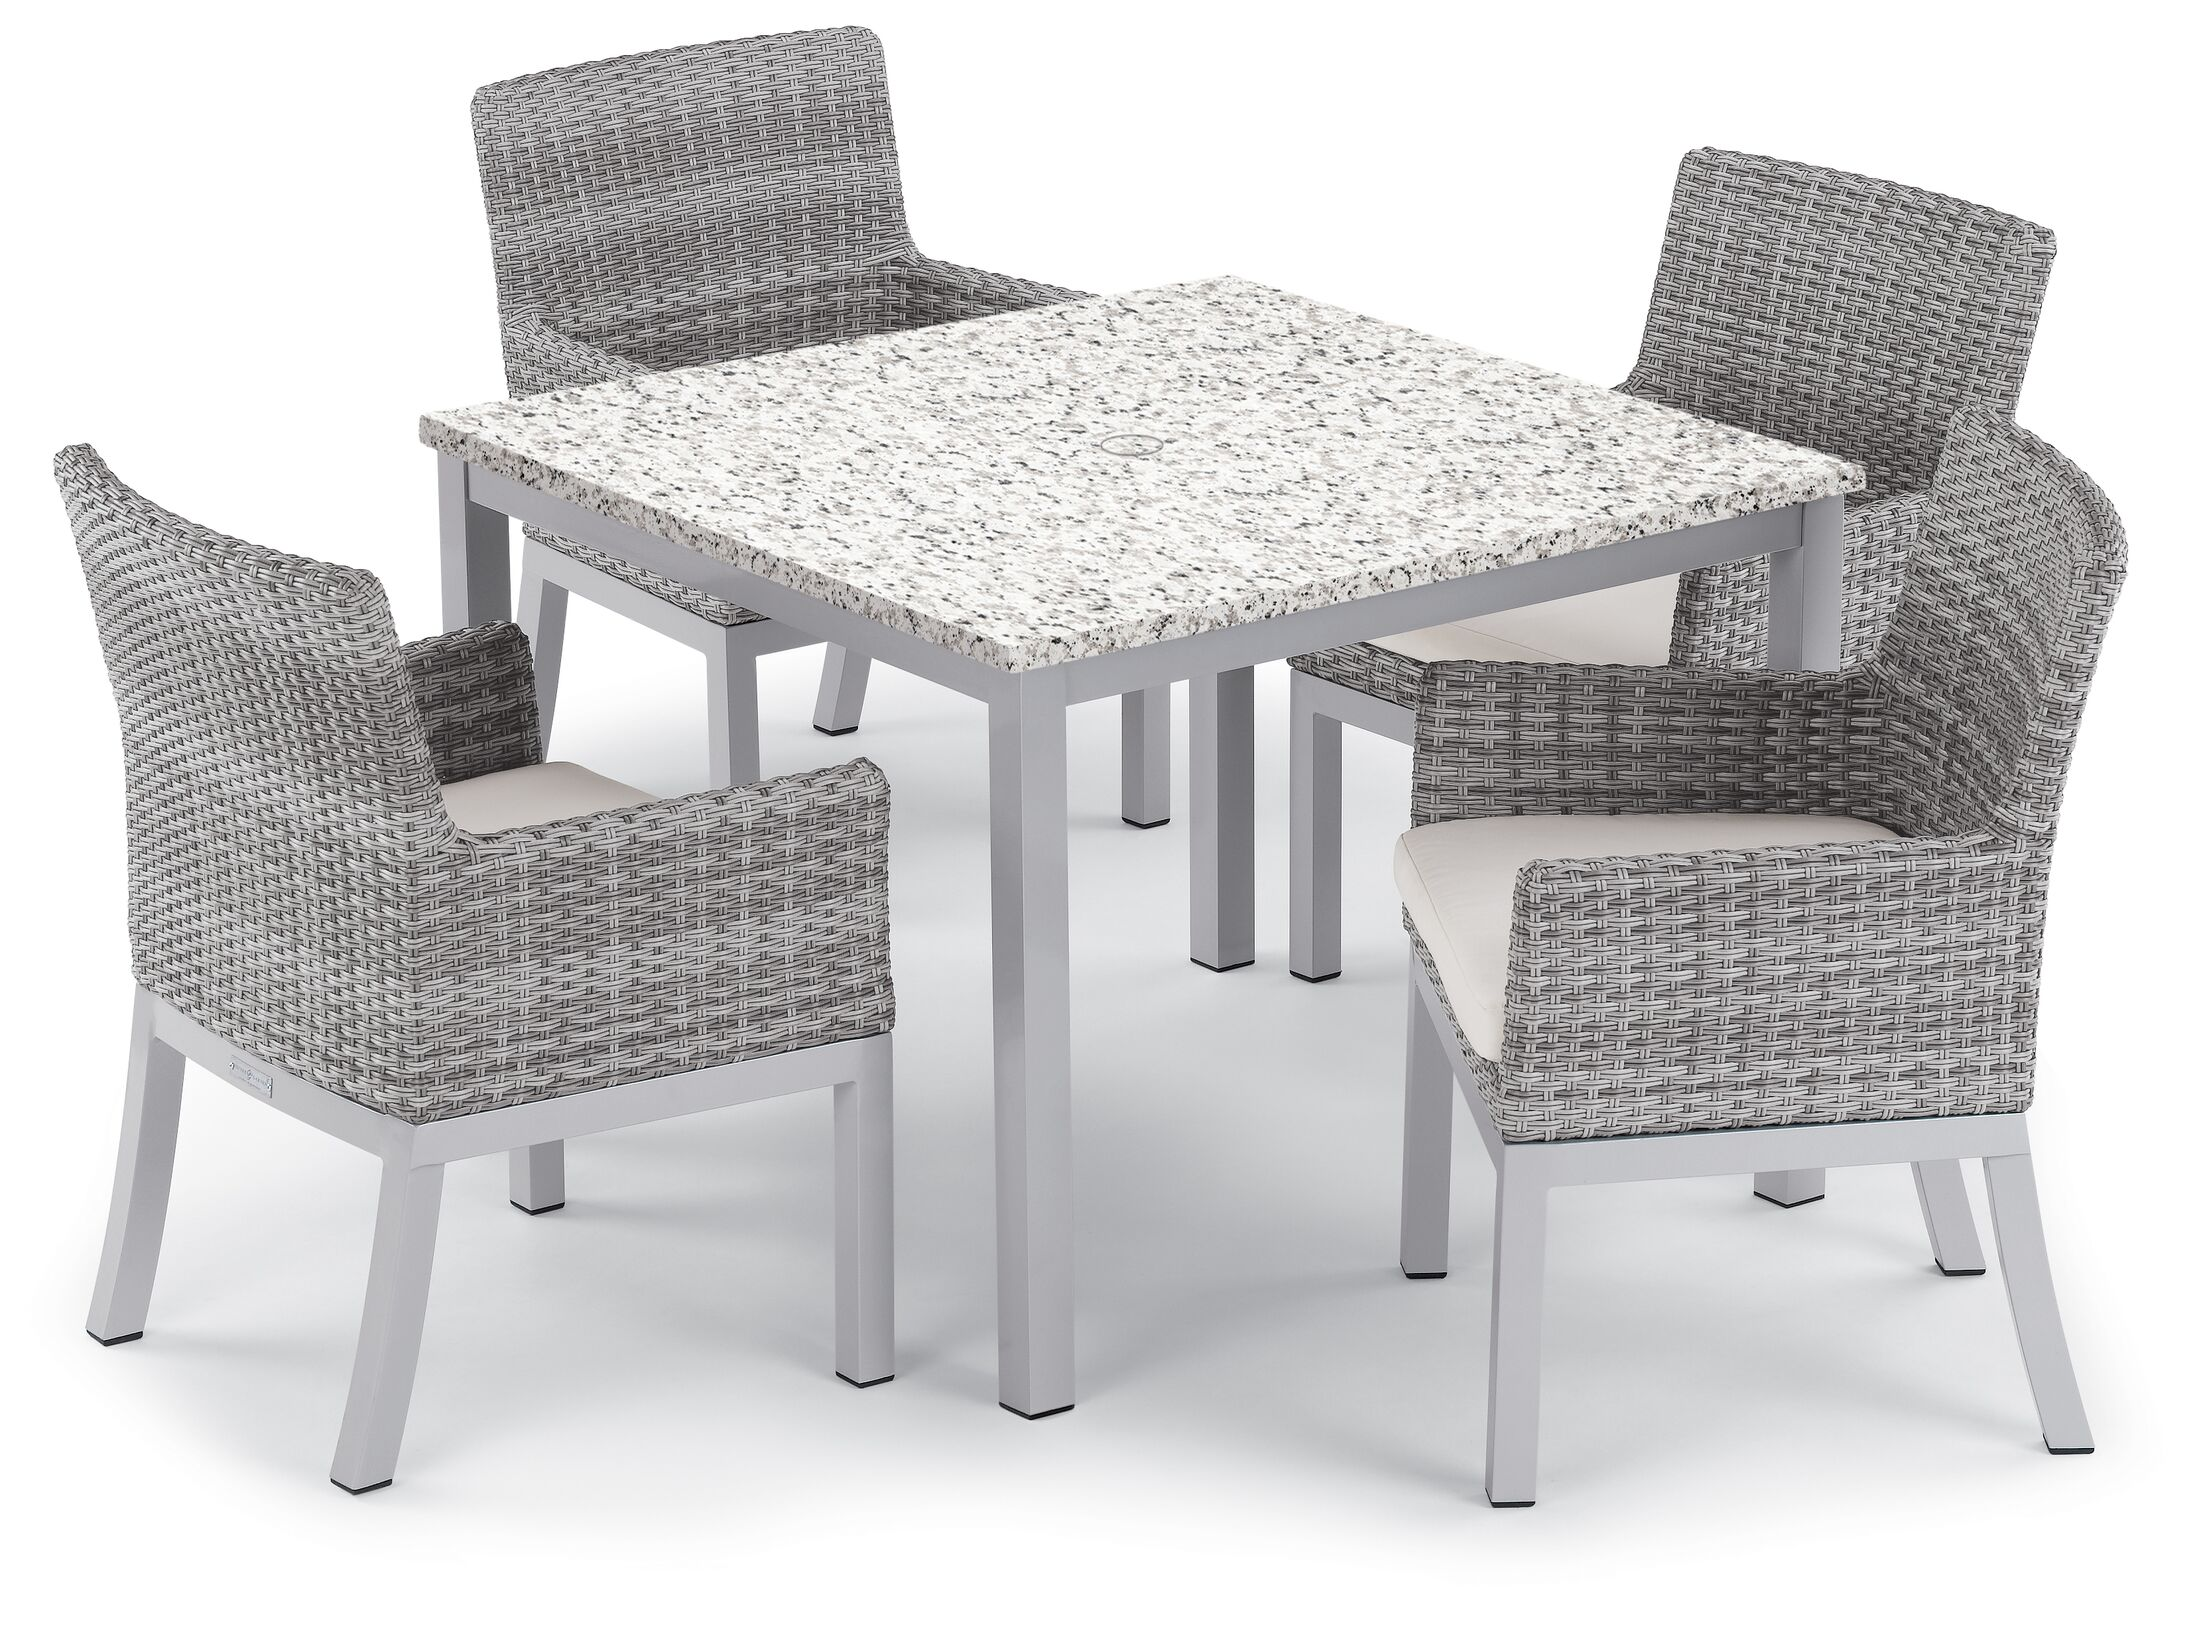 Saleh 5 Piece Dining Set with Cushion Cushion Color: Stone, Table Top Color: Charcoal